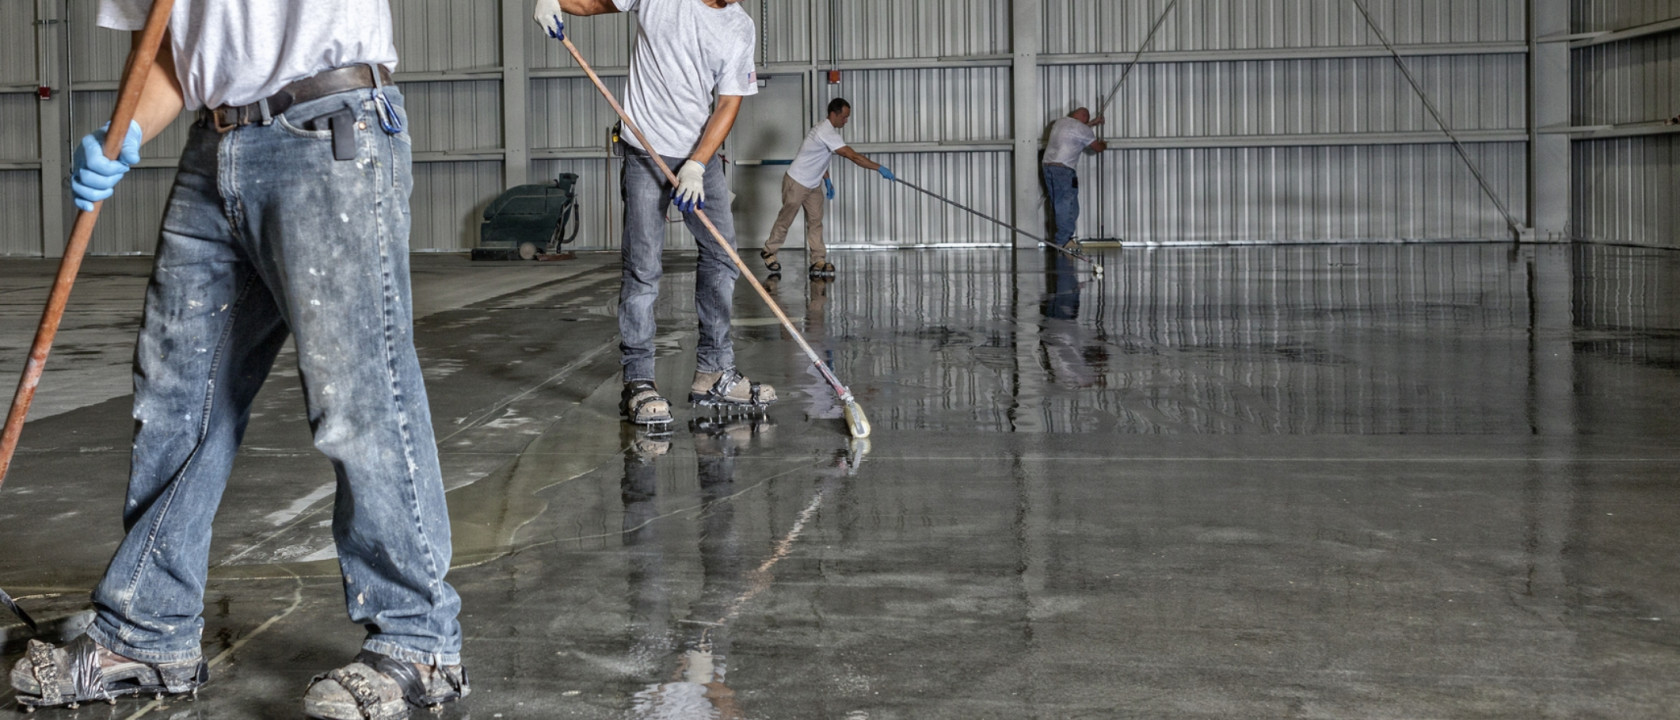 Polyaspartic 745 Concrete Sealer marketing image